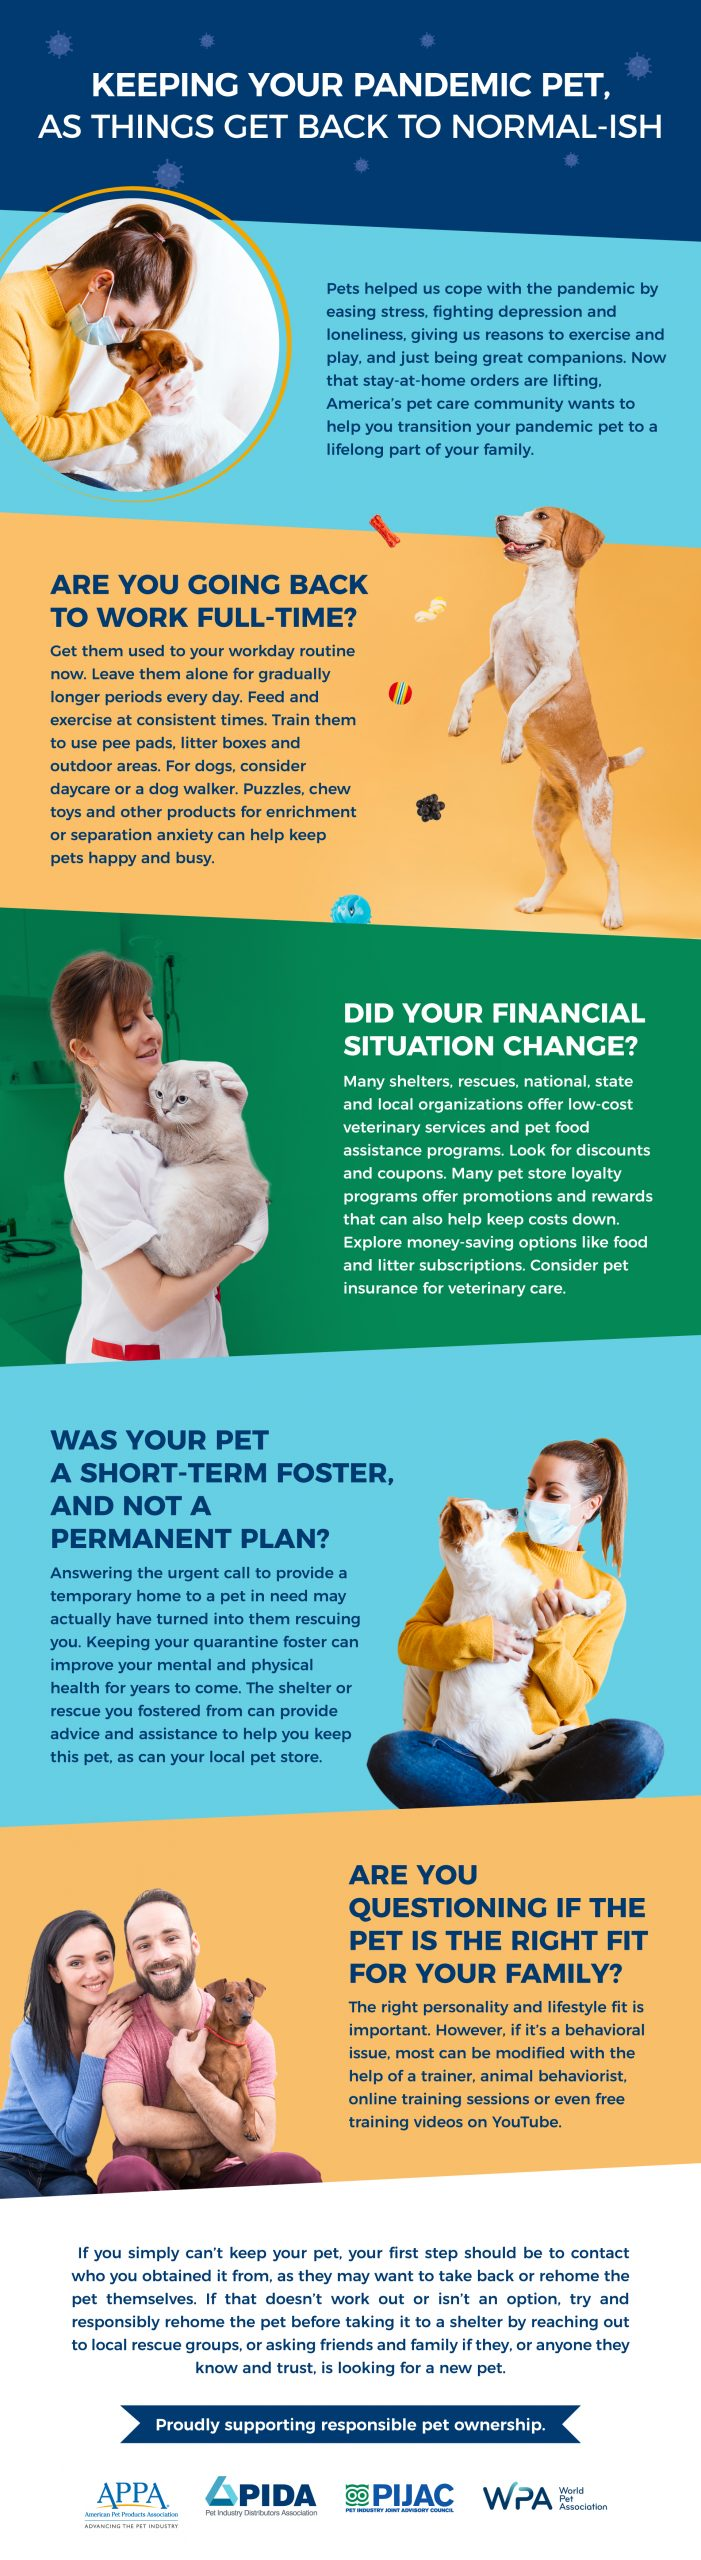 -Leading pet care organizations join together to help pet owners and fosters - WASHINGTON, DC – Pets helped us cope with the pandemic by easing stress, fighting depression and loneliness, giving us reasons to exercise and play, and just being great companions. Now that stay-at-home orders are lifting, America's pet care community is sharing an infographic to help people transition pandemic pets to a lifelong part of the family. Understandably people are facing new challenges as they begin to make their way back toward pre-pandemic routines. Many are going back to work full-time, or soon will be, after working from home with their pet for two months or more. Others are facing difficult changes to their financial situations due to lost jobs or decreased hours. Animal shelters and rescues across the country were emptied with generous people stepping up to foster pets, many of whom are now considering permanent adoptions. This new infographic provides information for various situations and is designed to help pet owners and fosters make informed and responsible decisions in the best interest of both the pet and the family. Whatever each individual or family's changing circumstances are, or how the pet is reacting, there are ways to support their pet ownership journey to give them the opportunity to continue enjoying the scientifically-proven mental and physical health benefits of animal companionship.